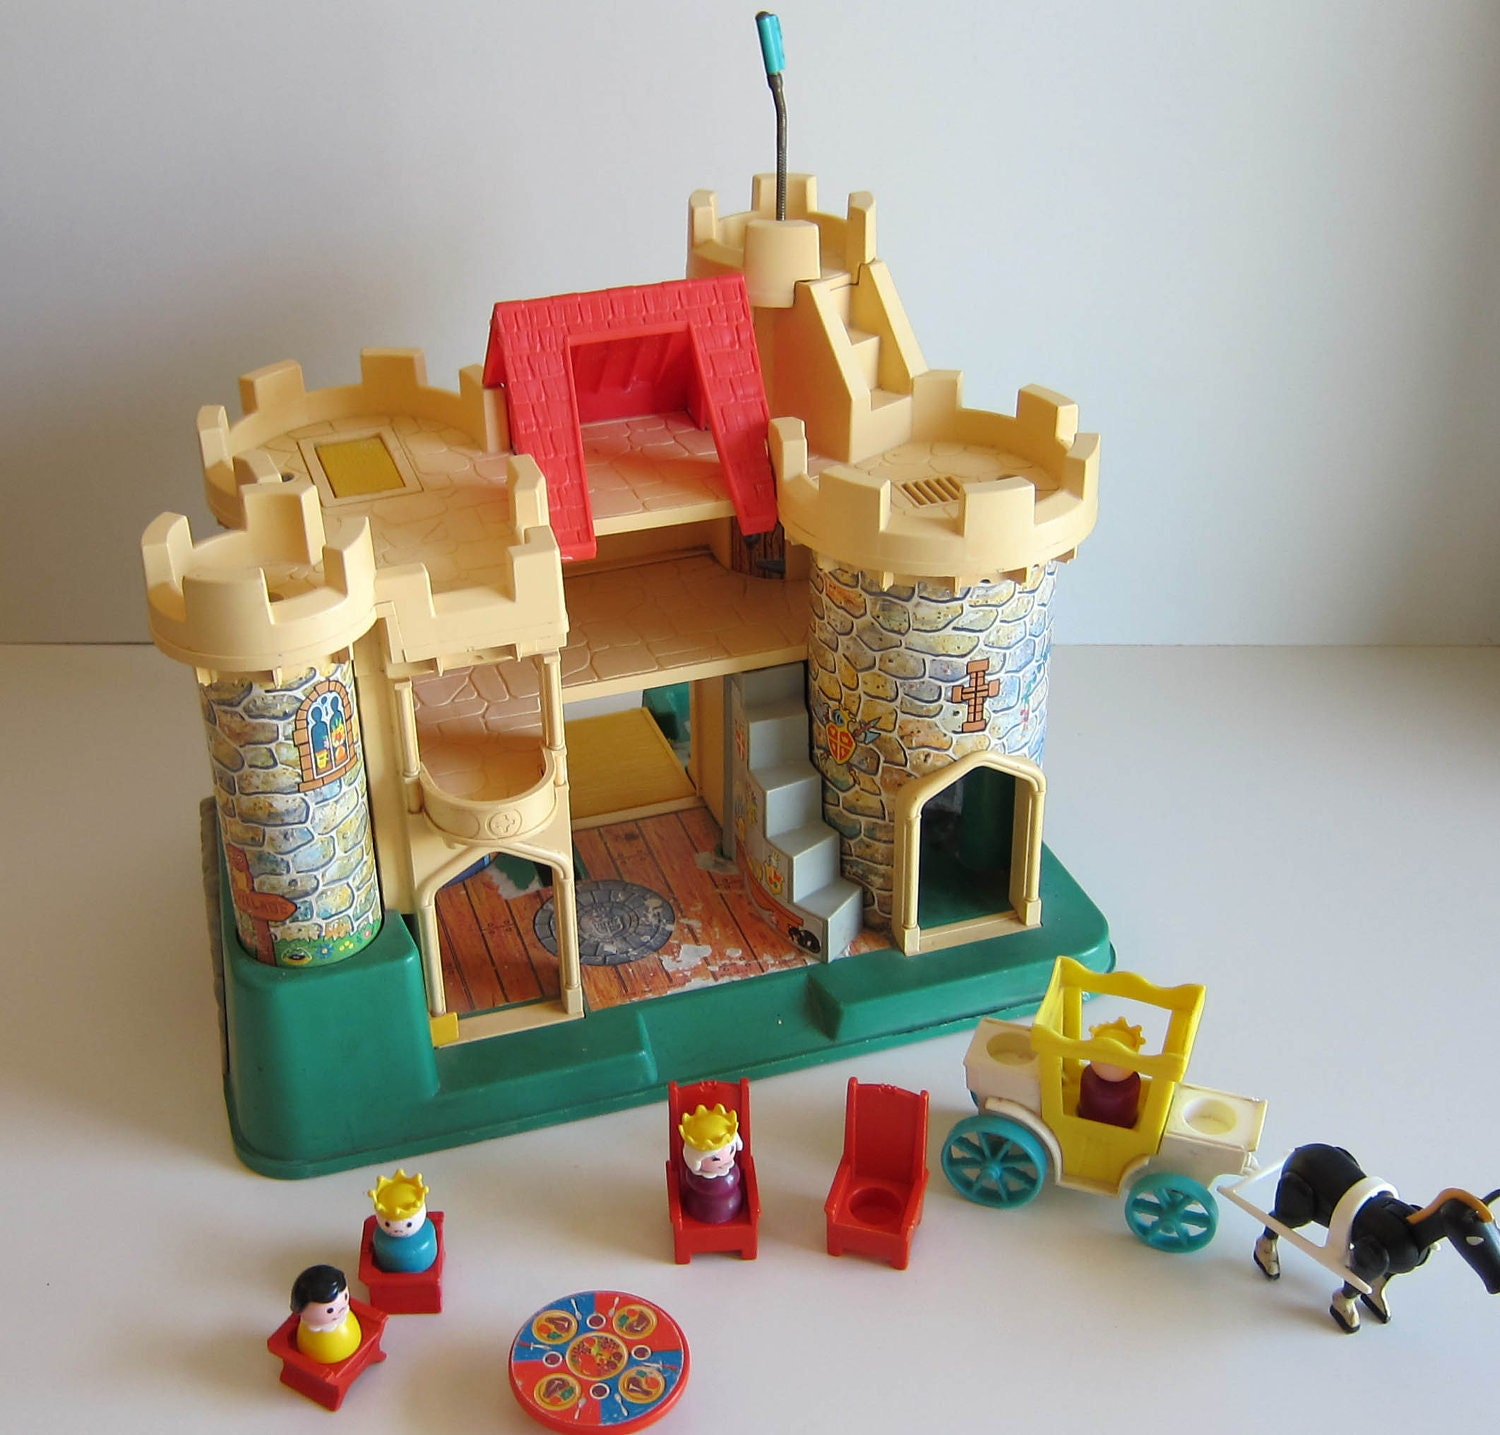 Old Toys From The 70s : Fisher price castle vitnage s toy with little people